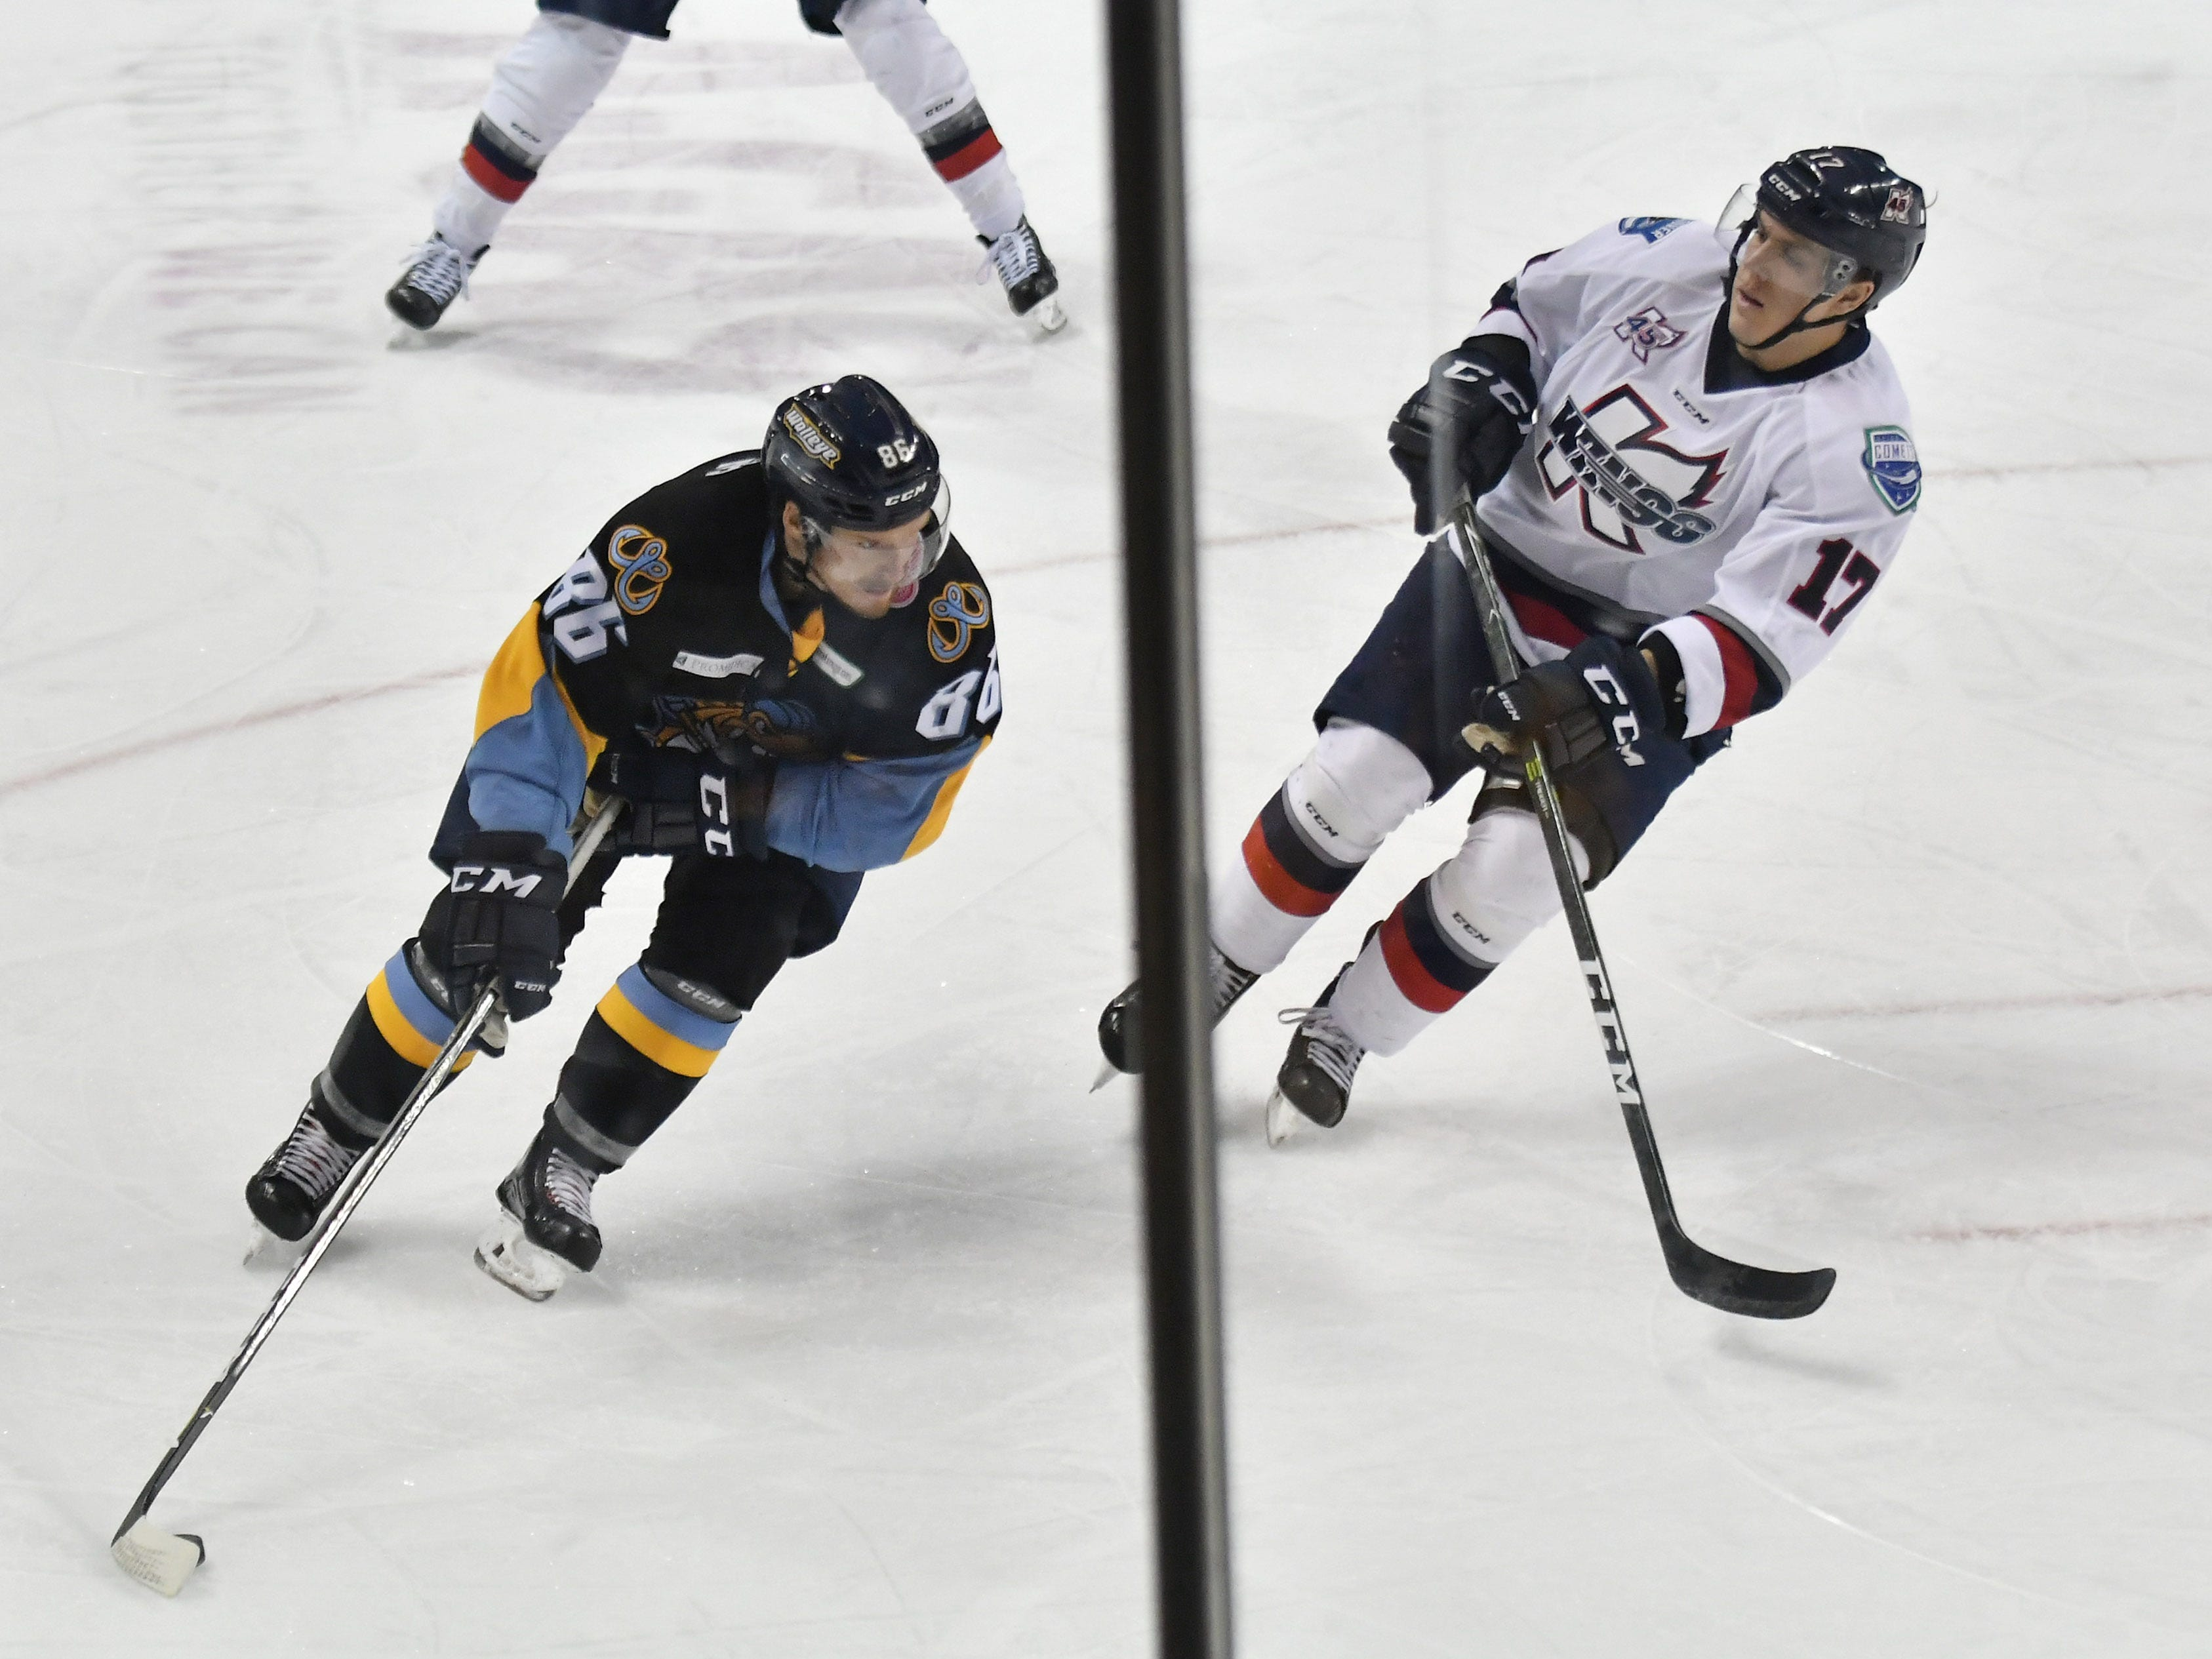 Kalamazoo defenseman Brandon Anselmini (17) comes over to cover Toledo forward Greg Wolfe (86) moving the puck in the third period.